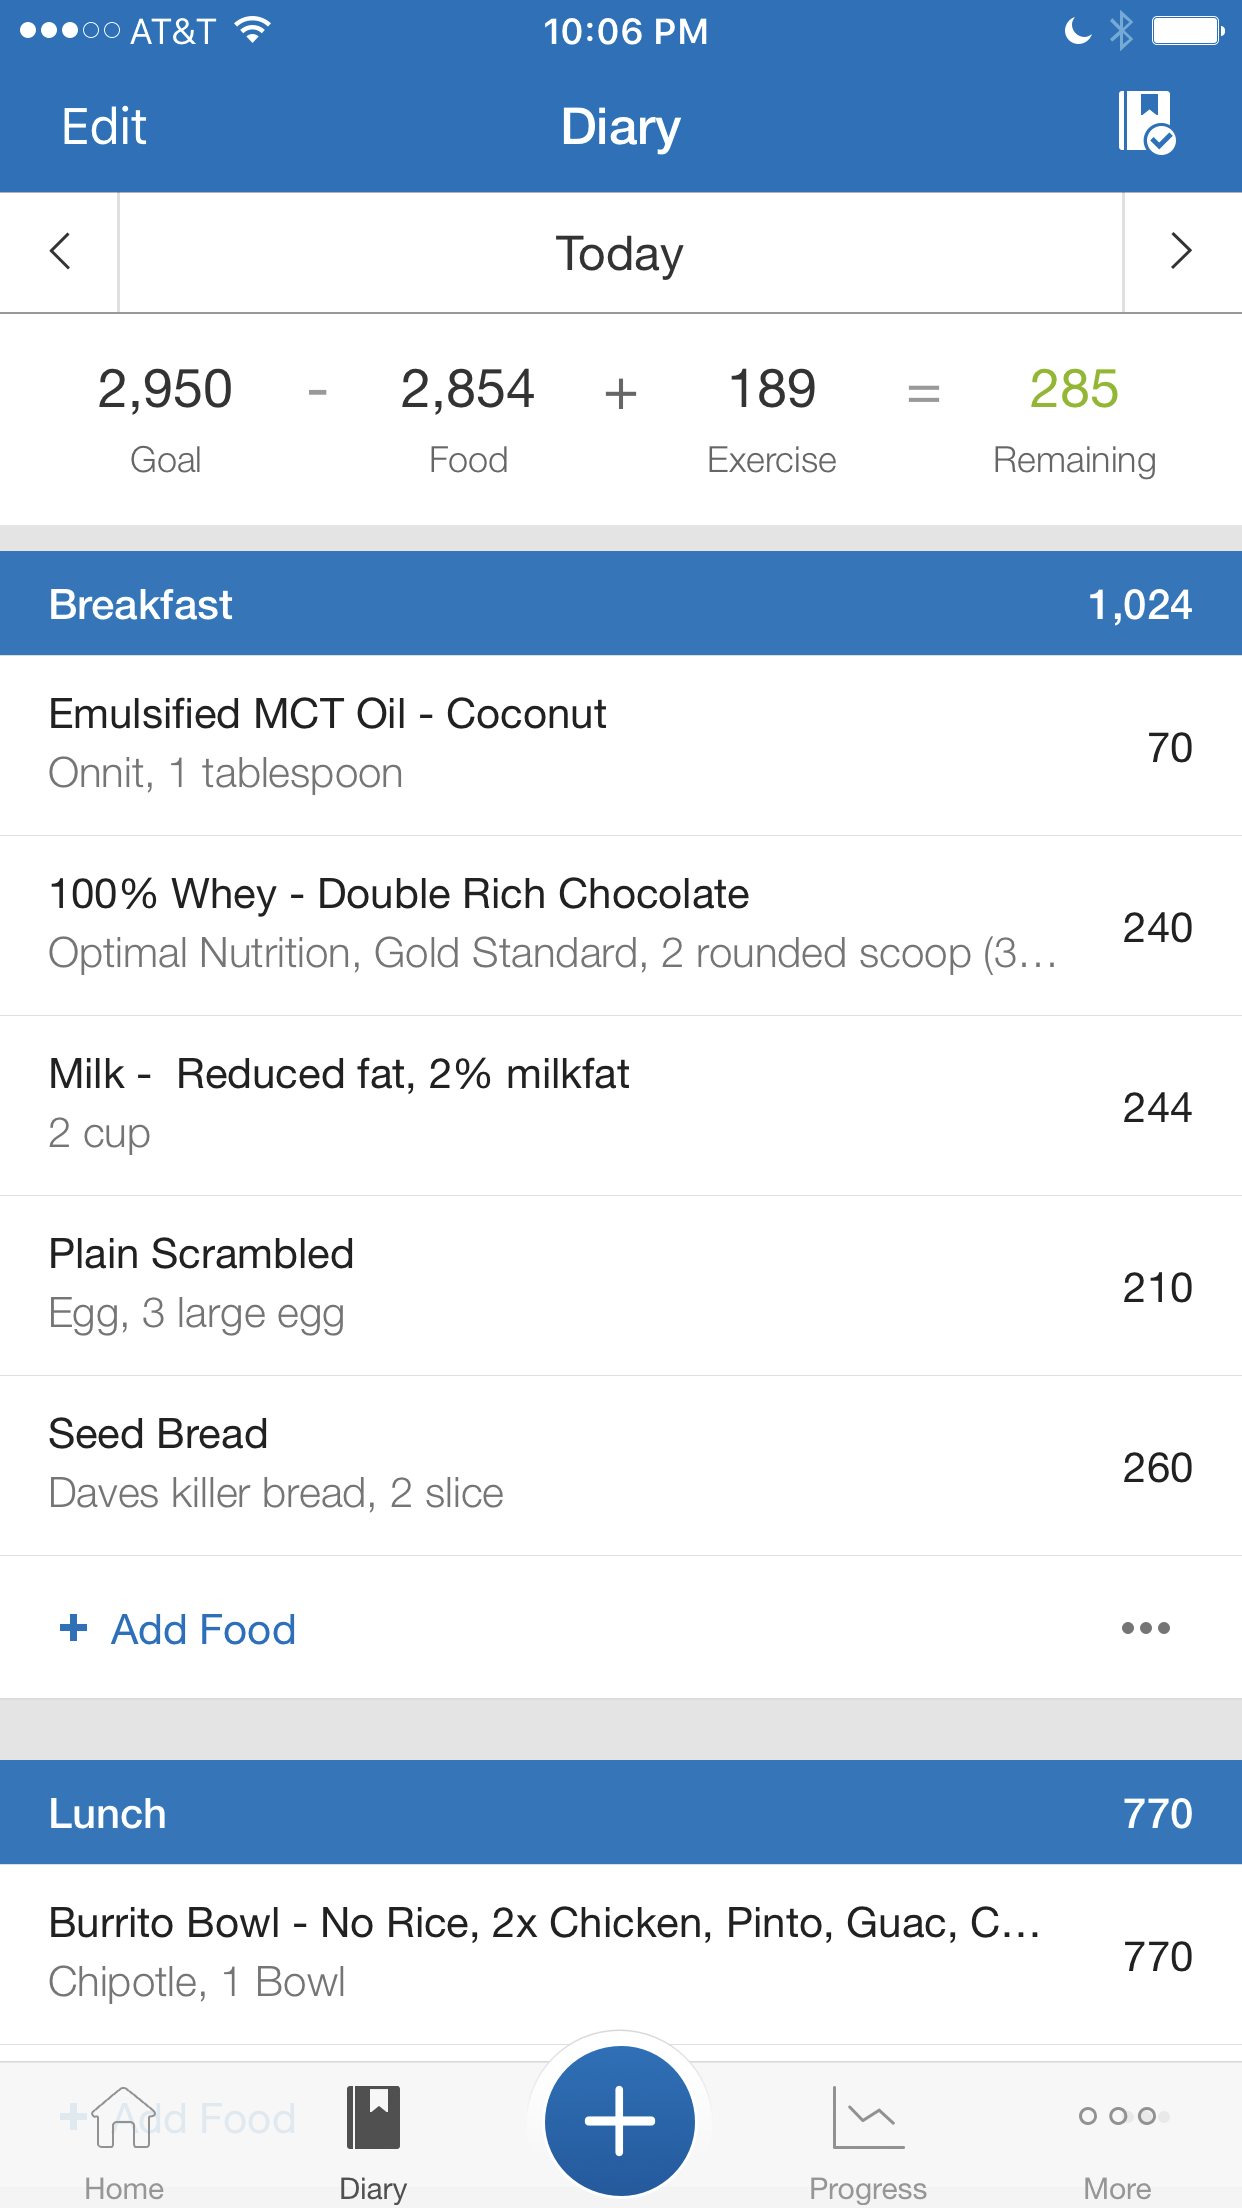 A screenshot of my daily food diary in MyFitnessPal.